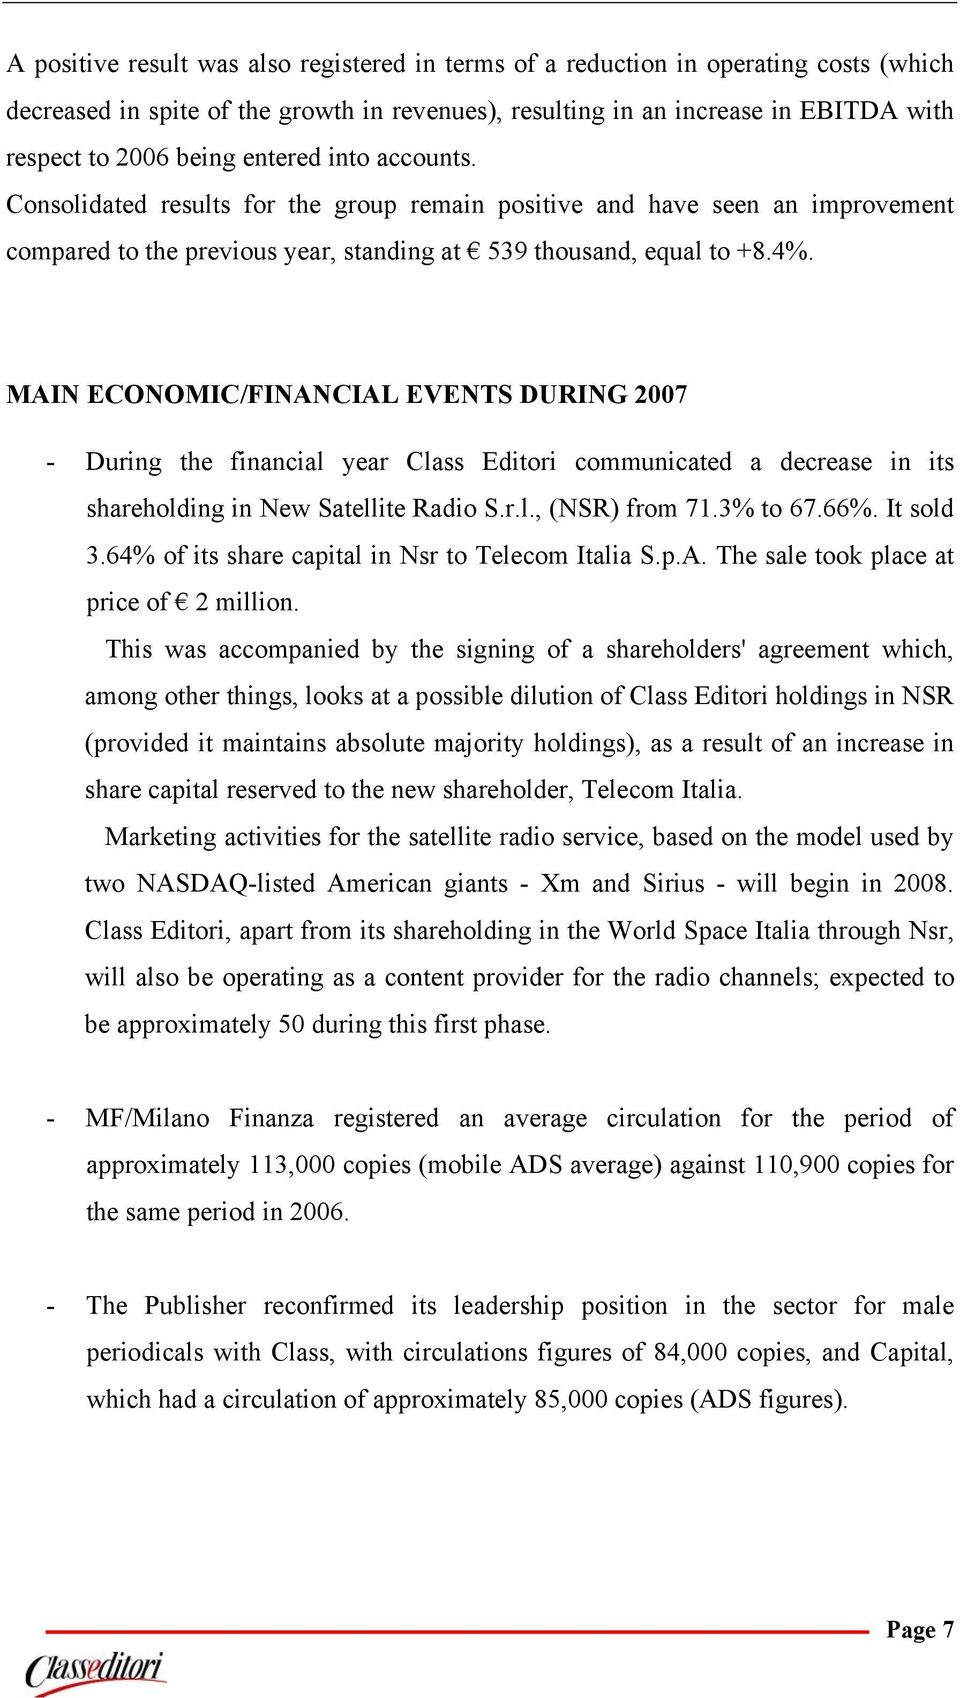 MAIN ECONOMIC/FINANCIAL EVENTS DURING 2007 - During the financial year Class Editori communicated a decrease in its shareholding in New Satellite Radio S.r.l., (NSR) from 71.3% to 67.66%. It sold 3.